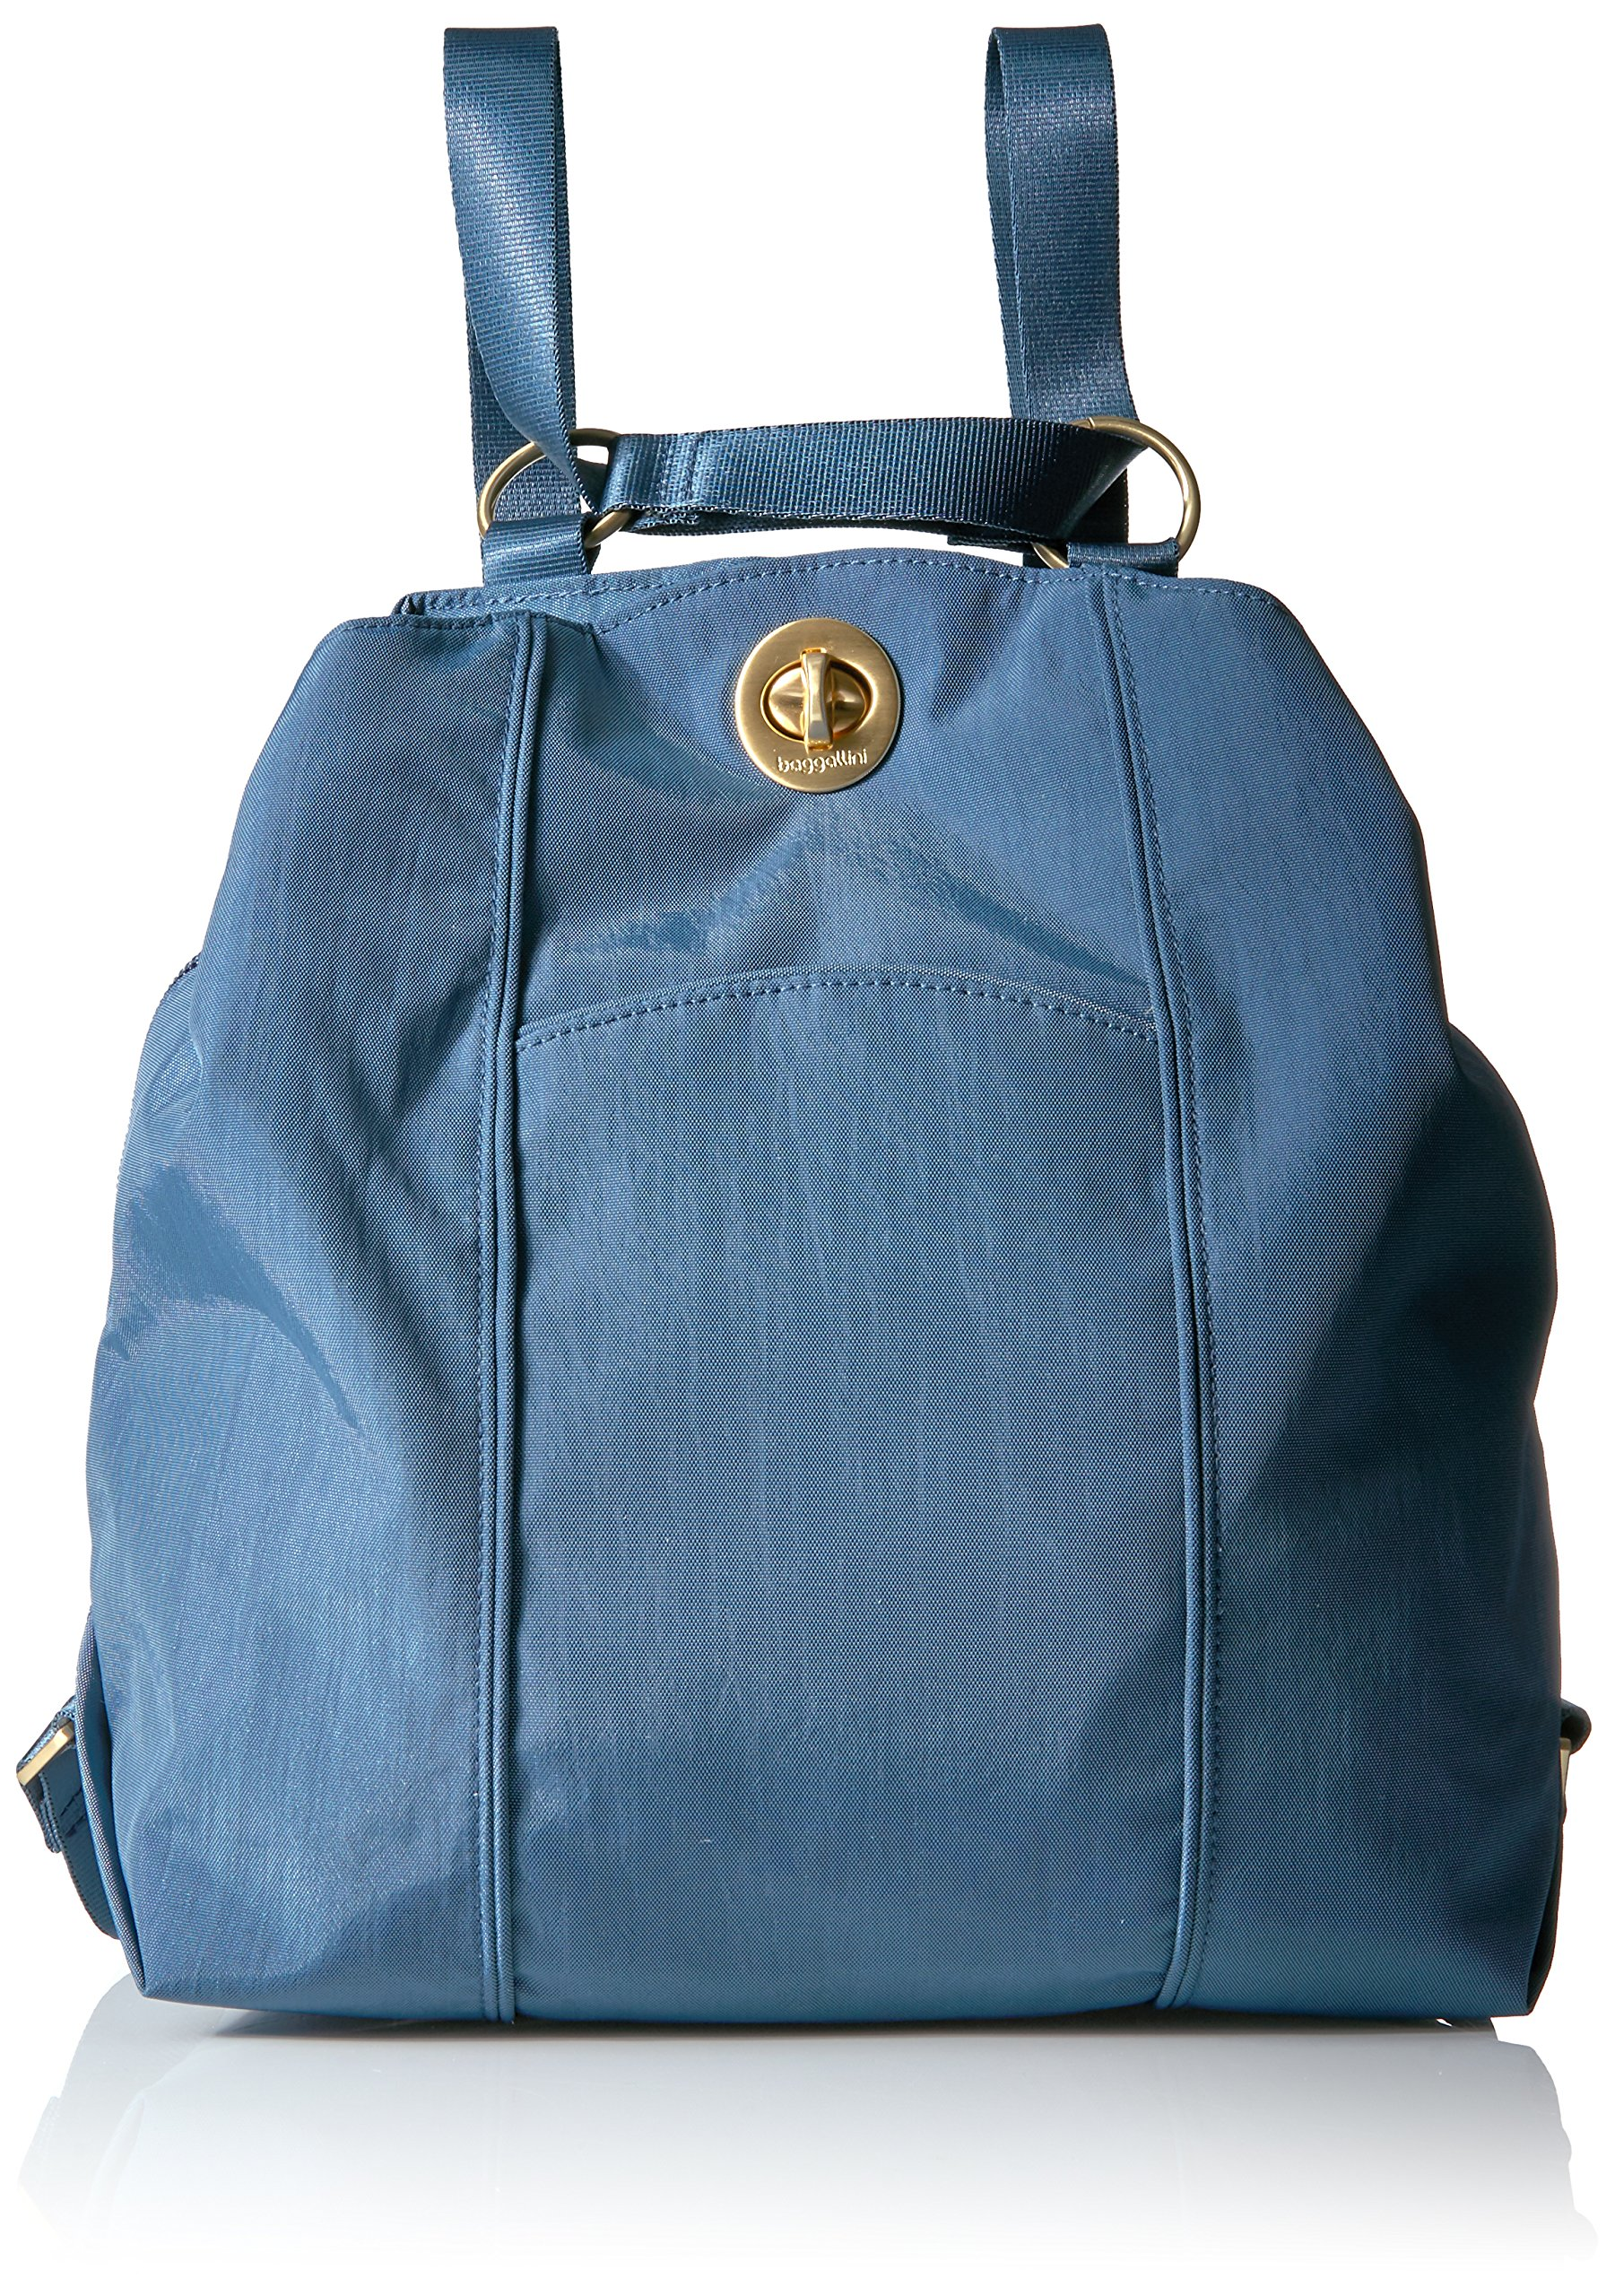 Baggallini Mendoza Backpack, Slate Blue, One Size